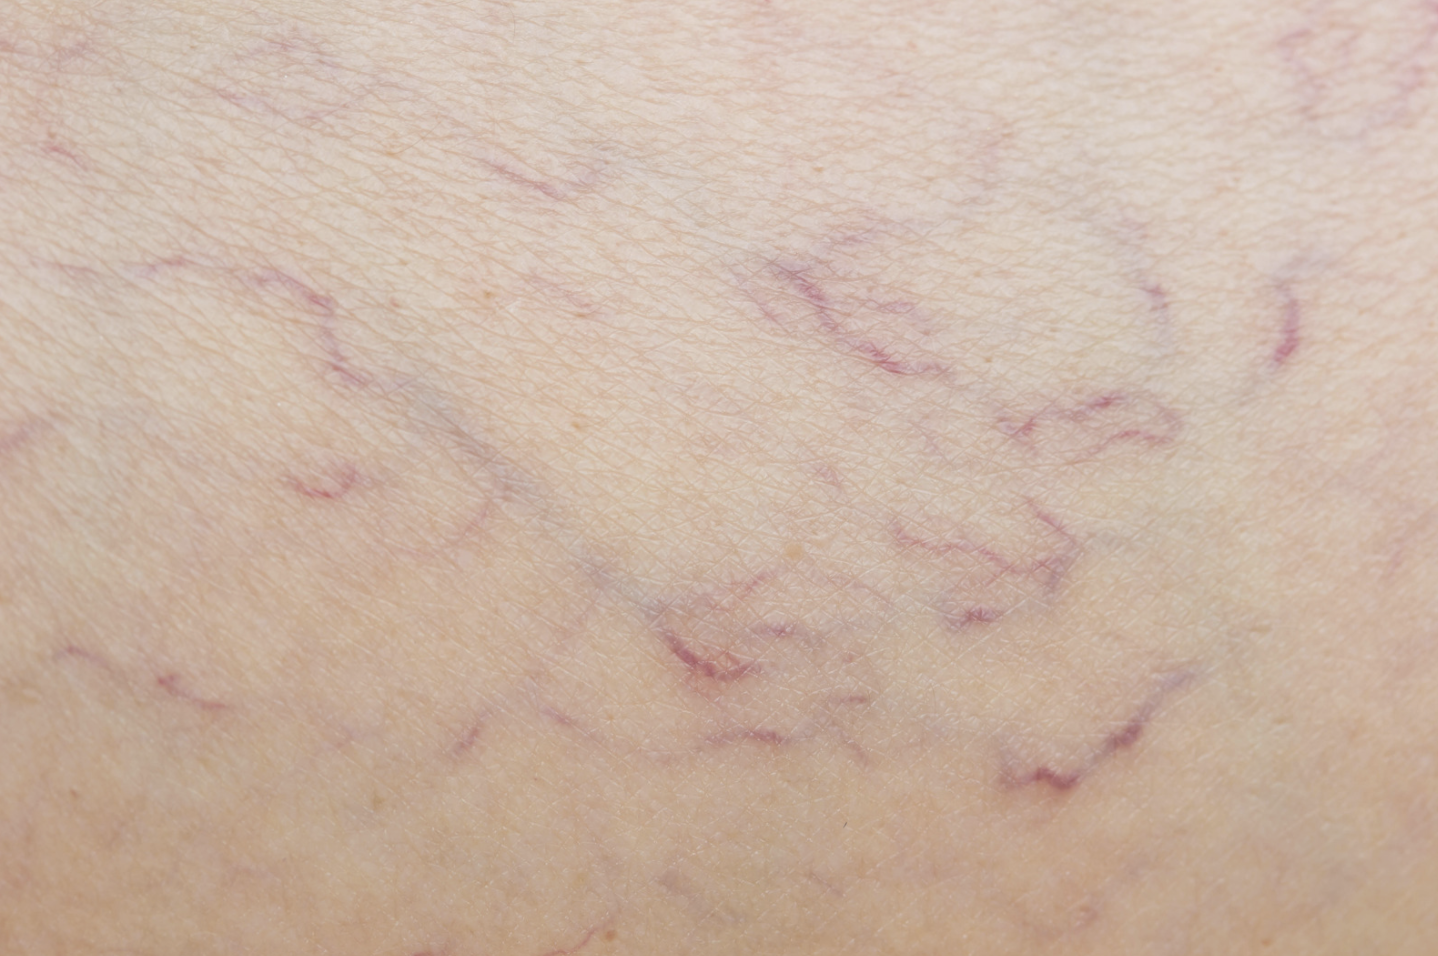 What Causes Spider Veins and How Can They Be Removed?